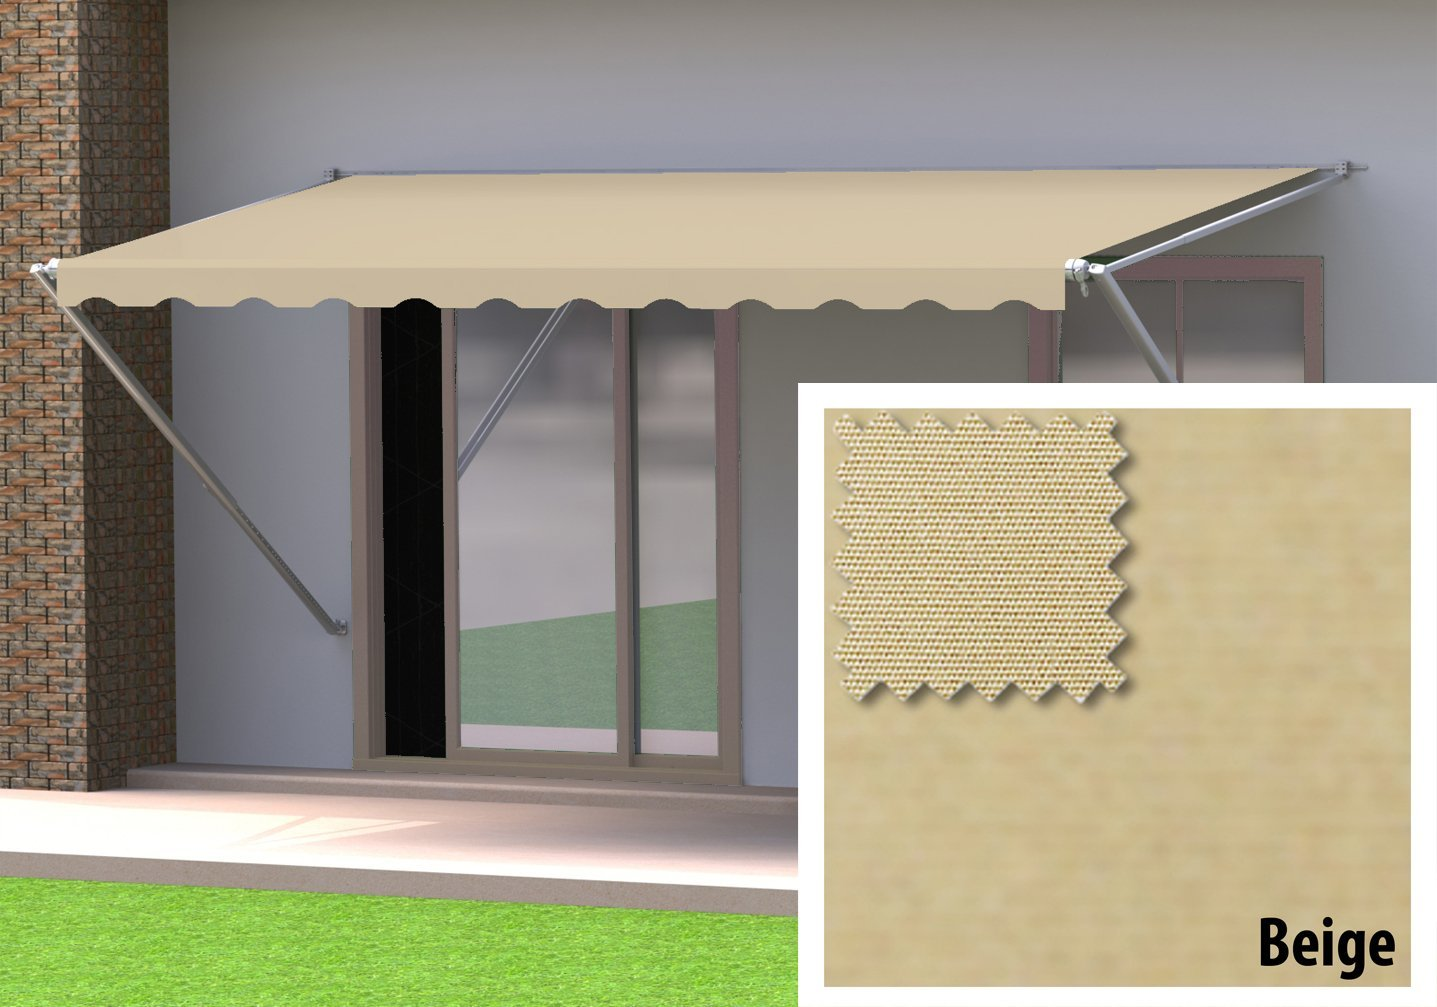 client retractable awning of screens crank news heather elegant out a announces pr west kolbe